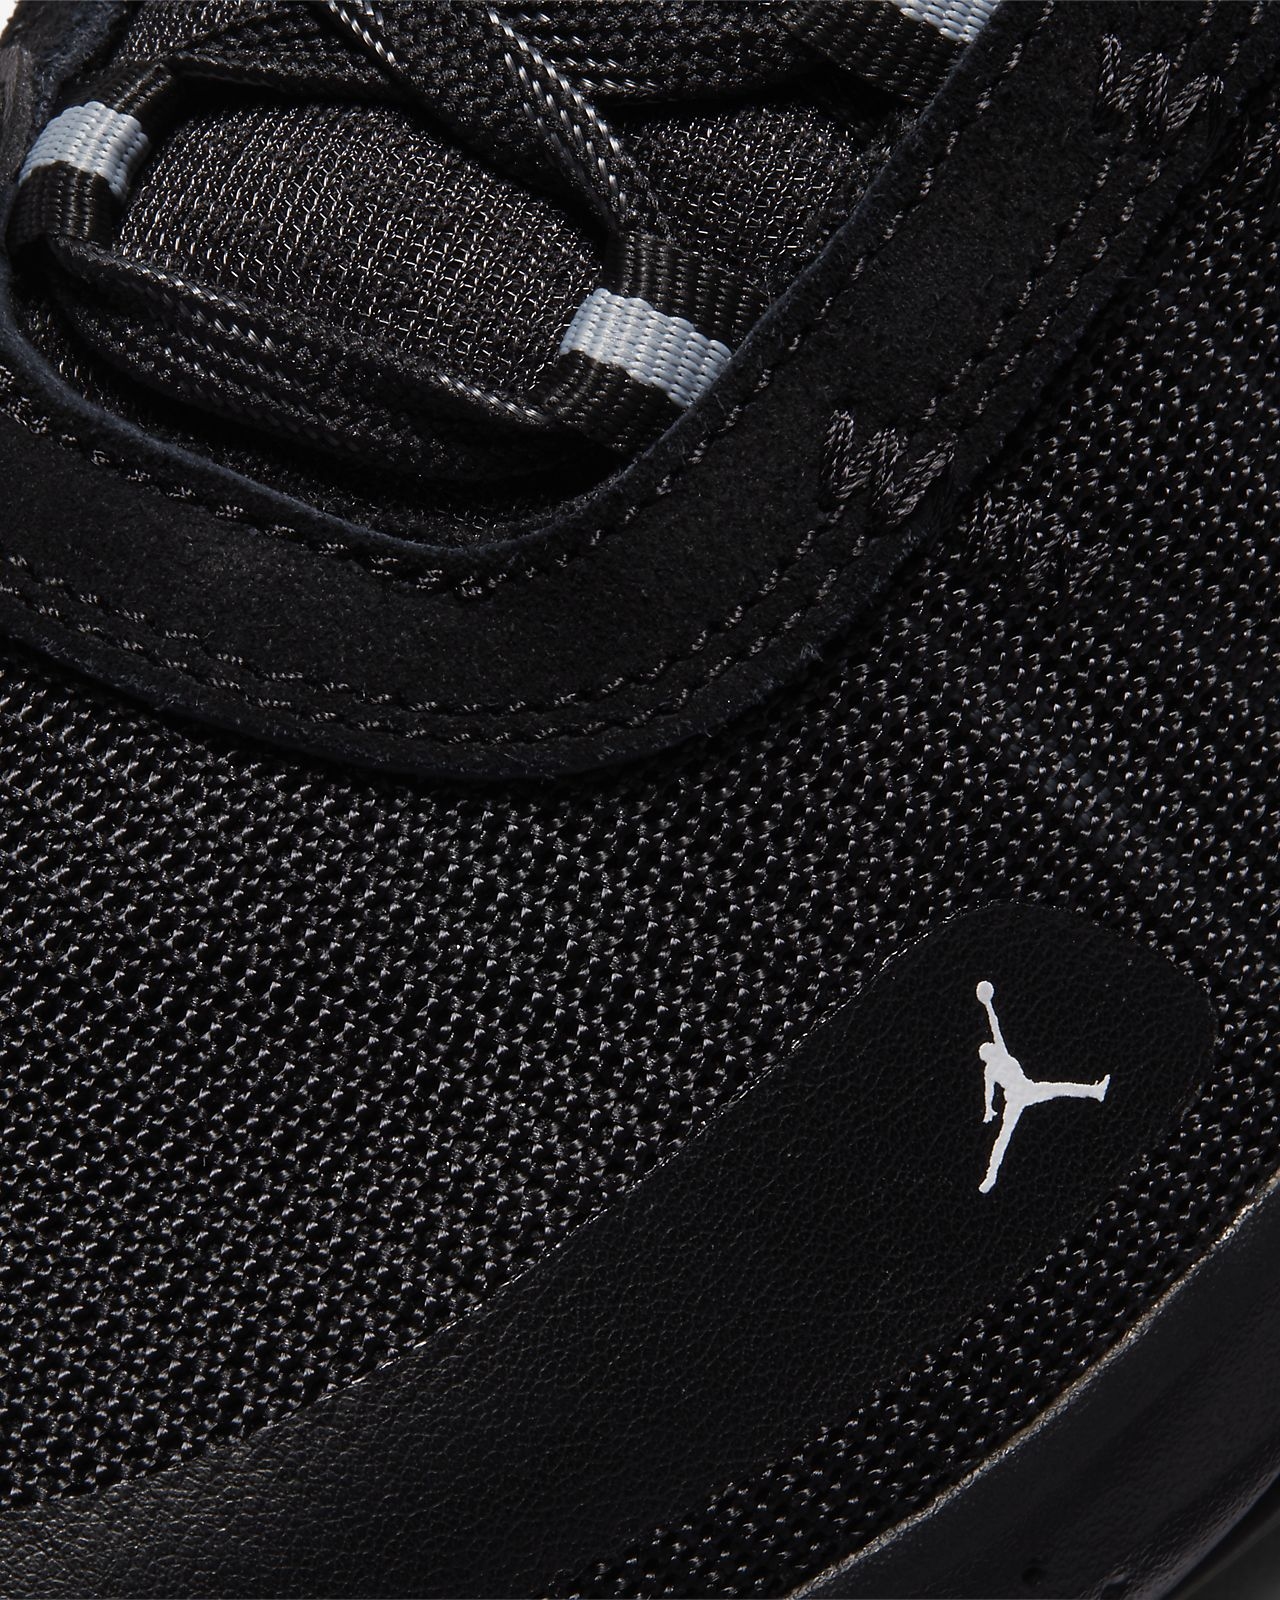 Jordan Jumpman 2020 Basketbalschoen voor heren